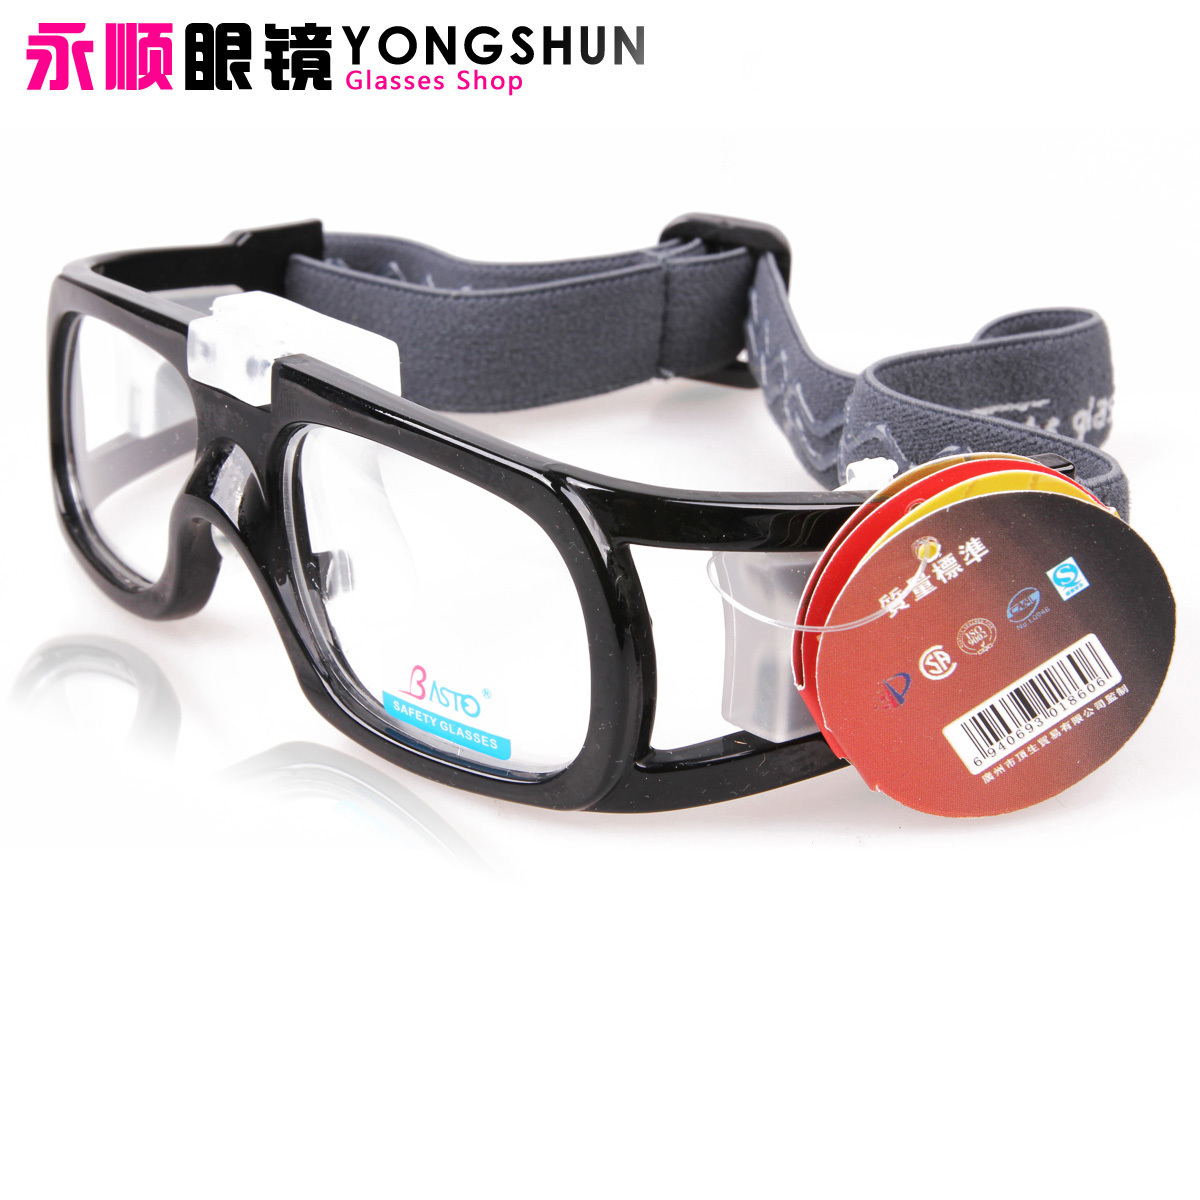 Bangshi degrees counter genuine mirror mirror football basketball sports goggles glasses outdoor sports 004